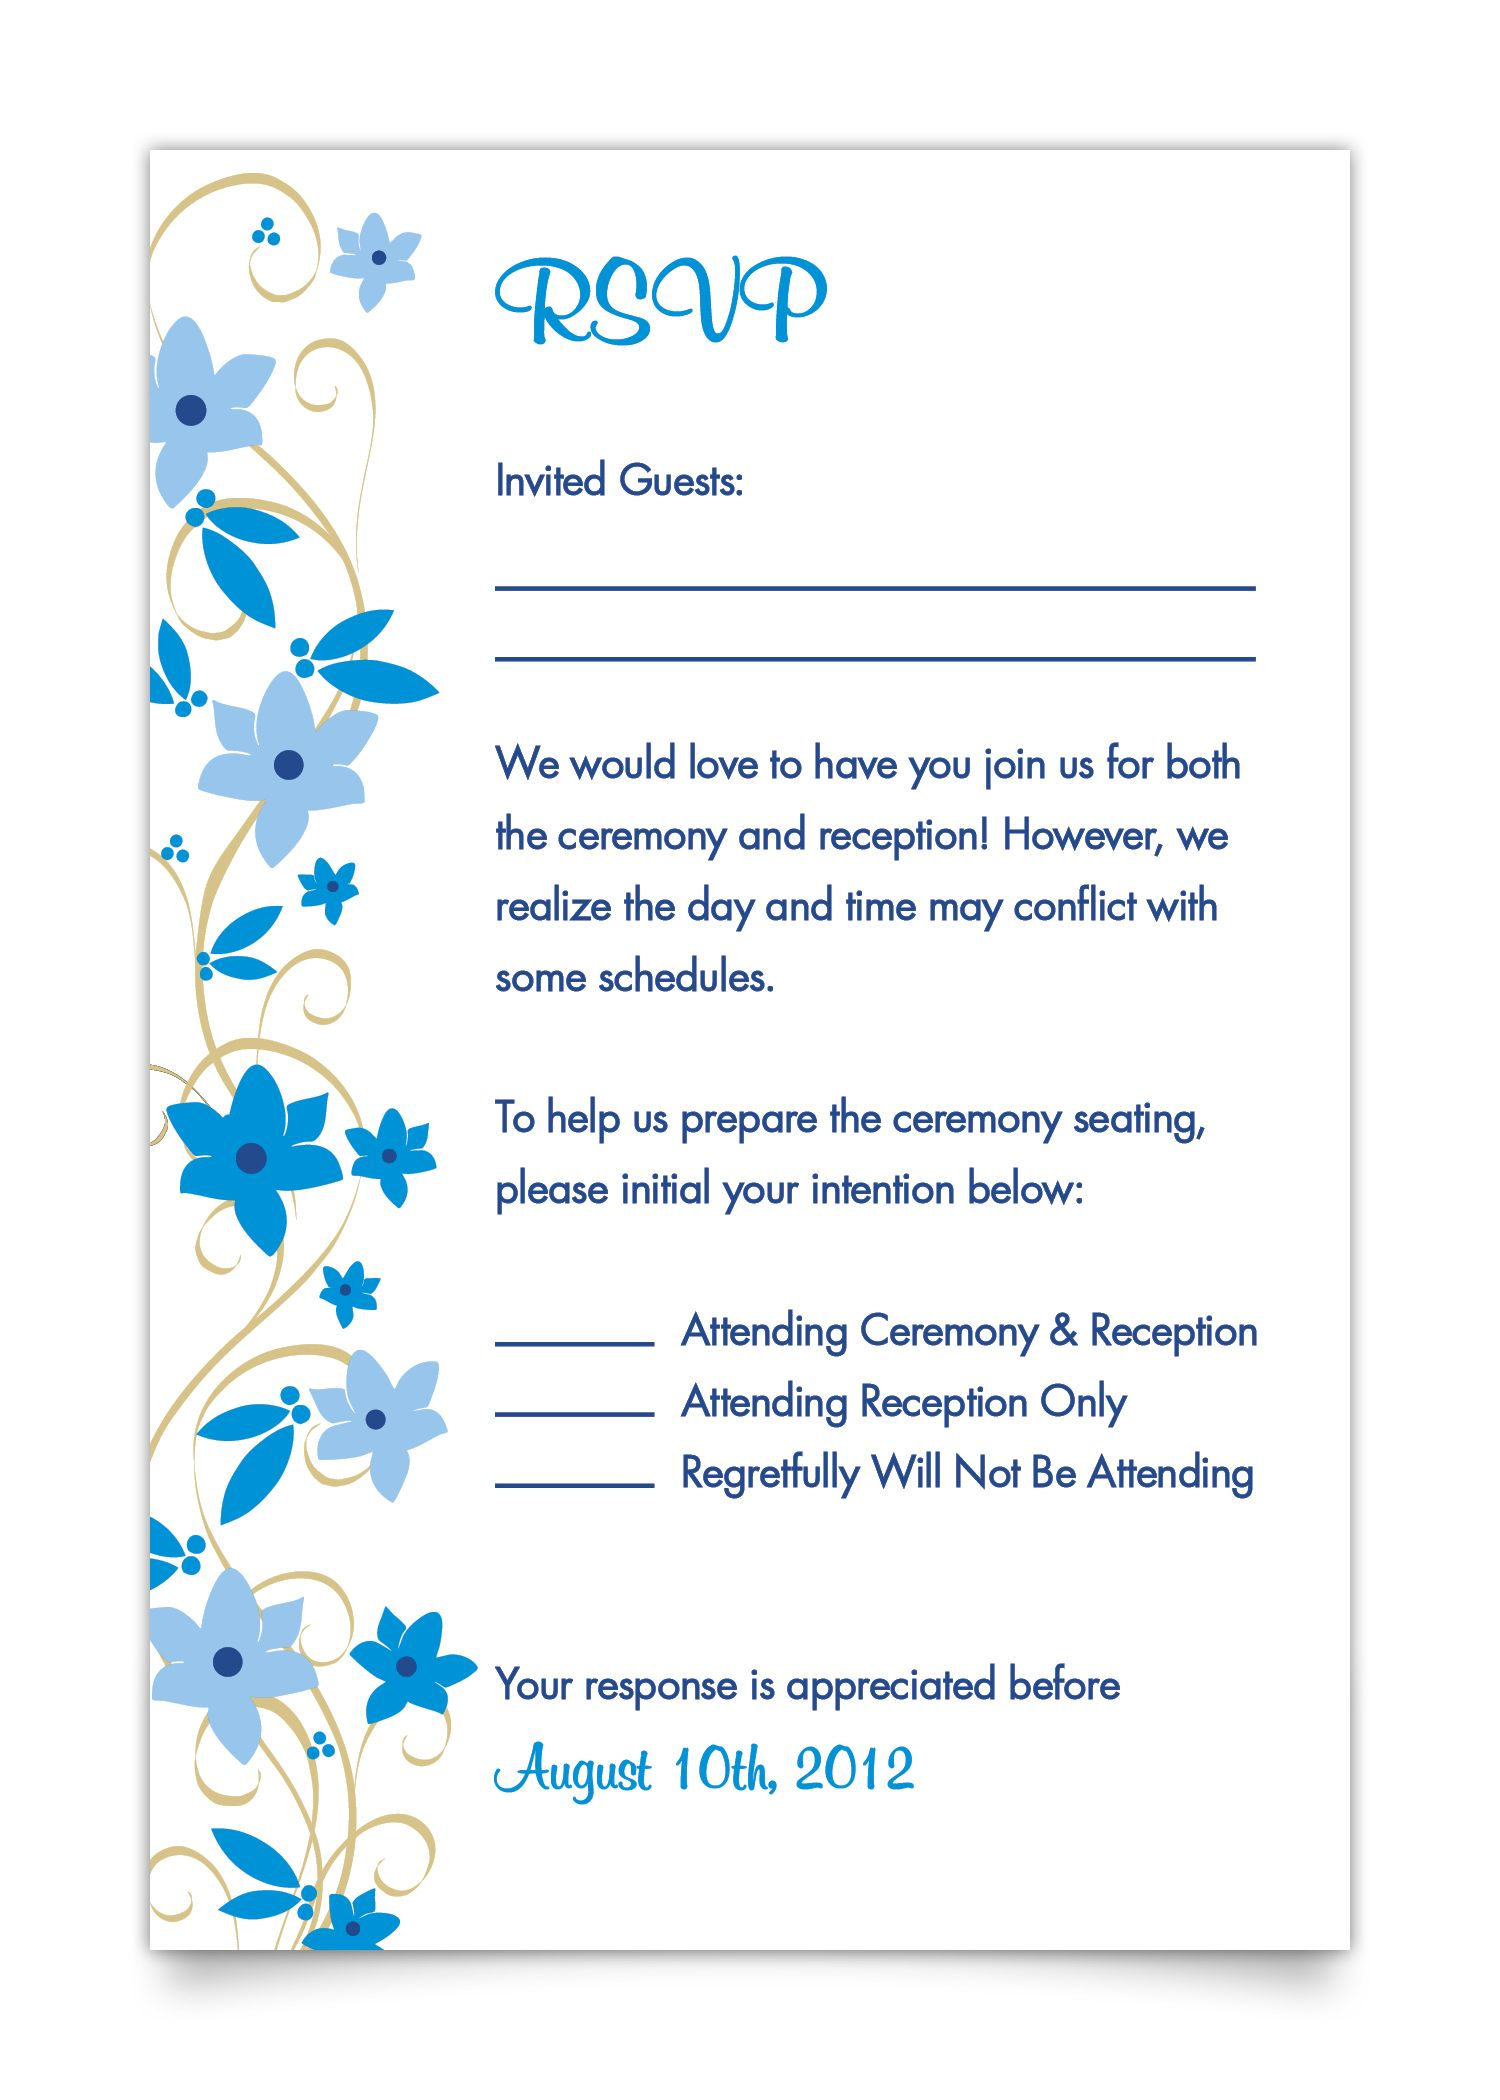 AdultsOnly Wedding Wording Rsvp Wedding And Wedding Wording - Birthday party invitation reply wording